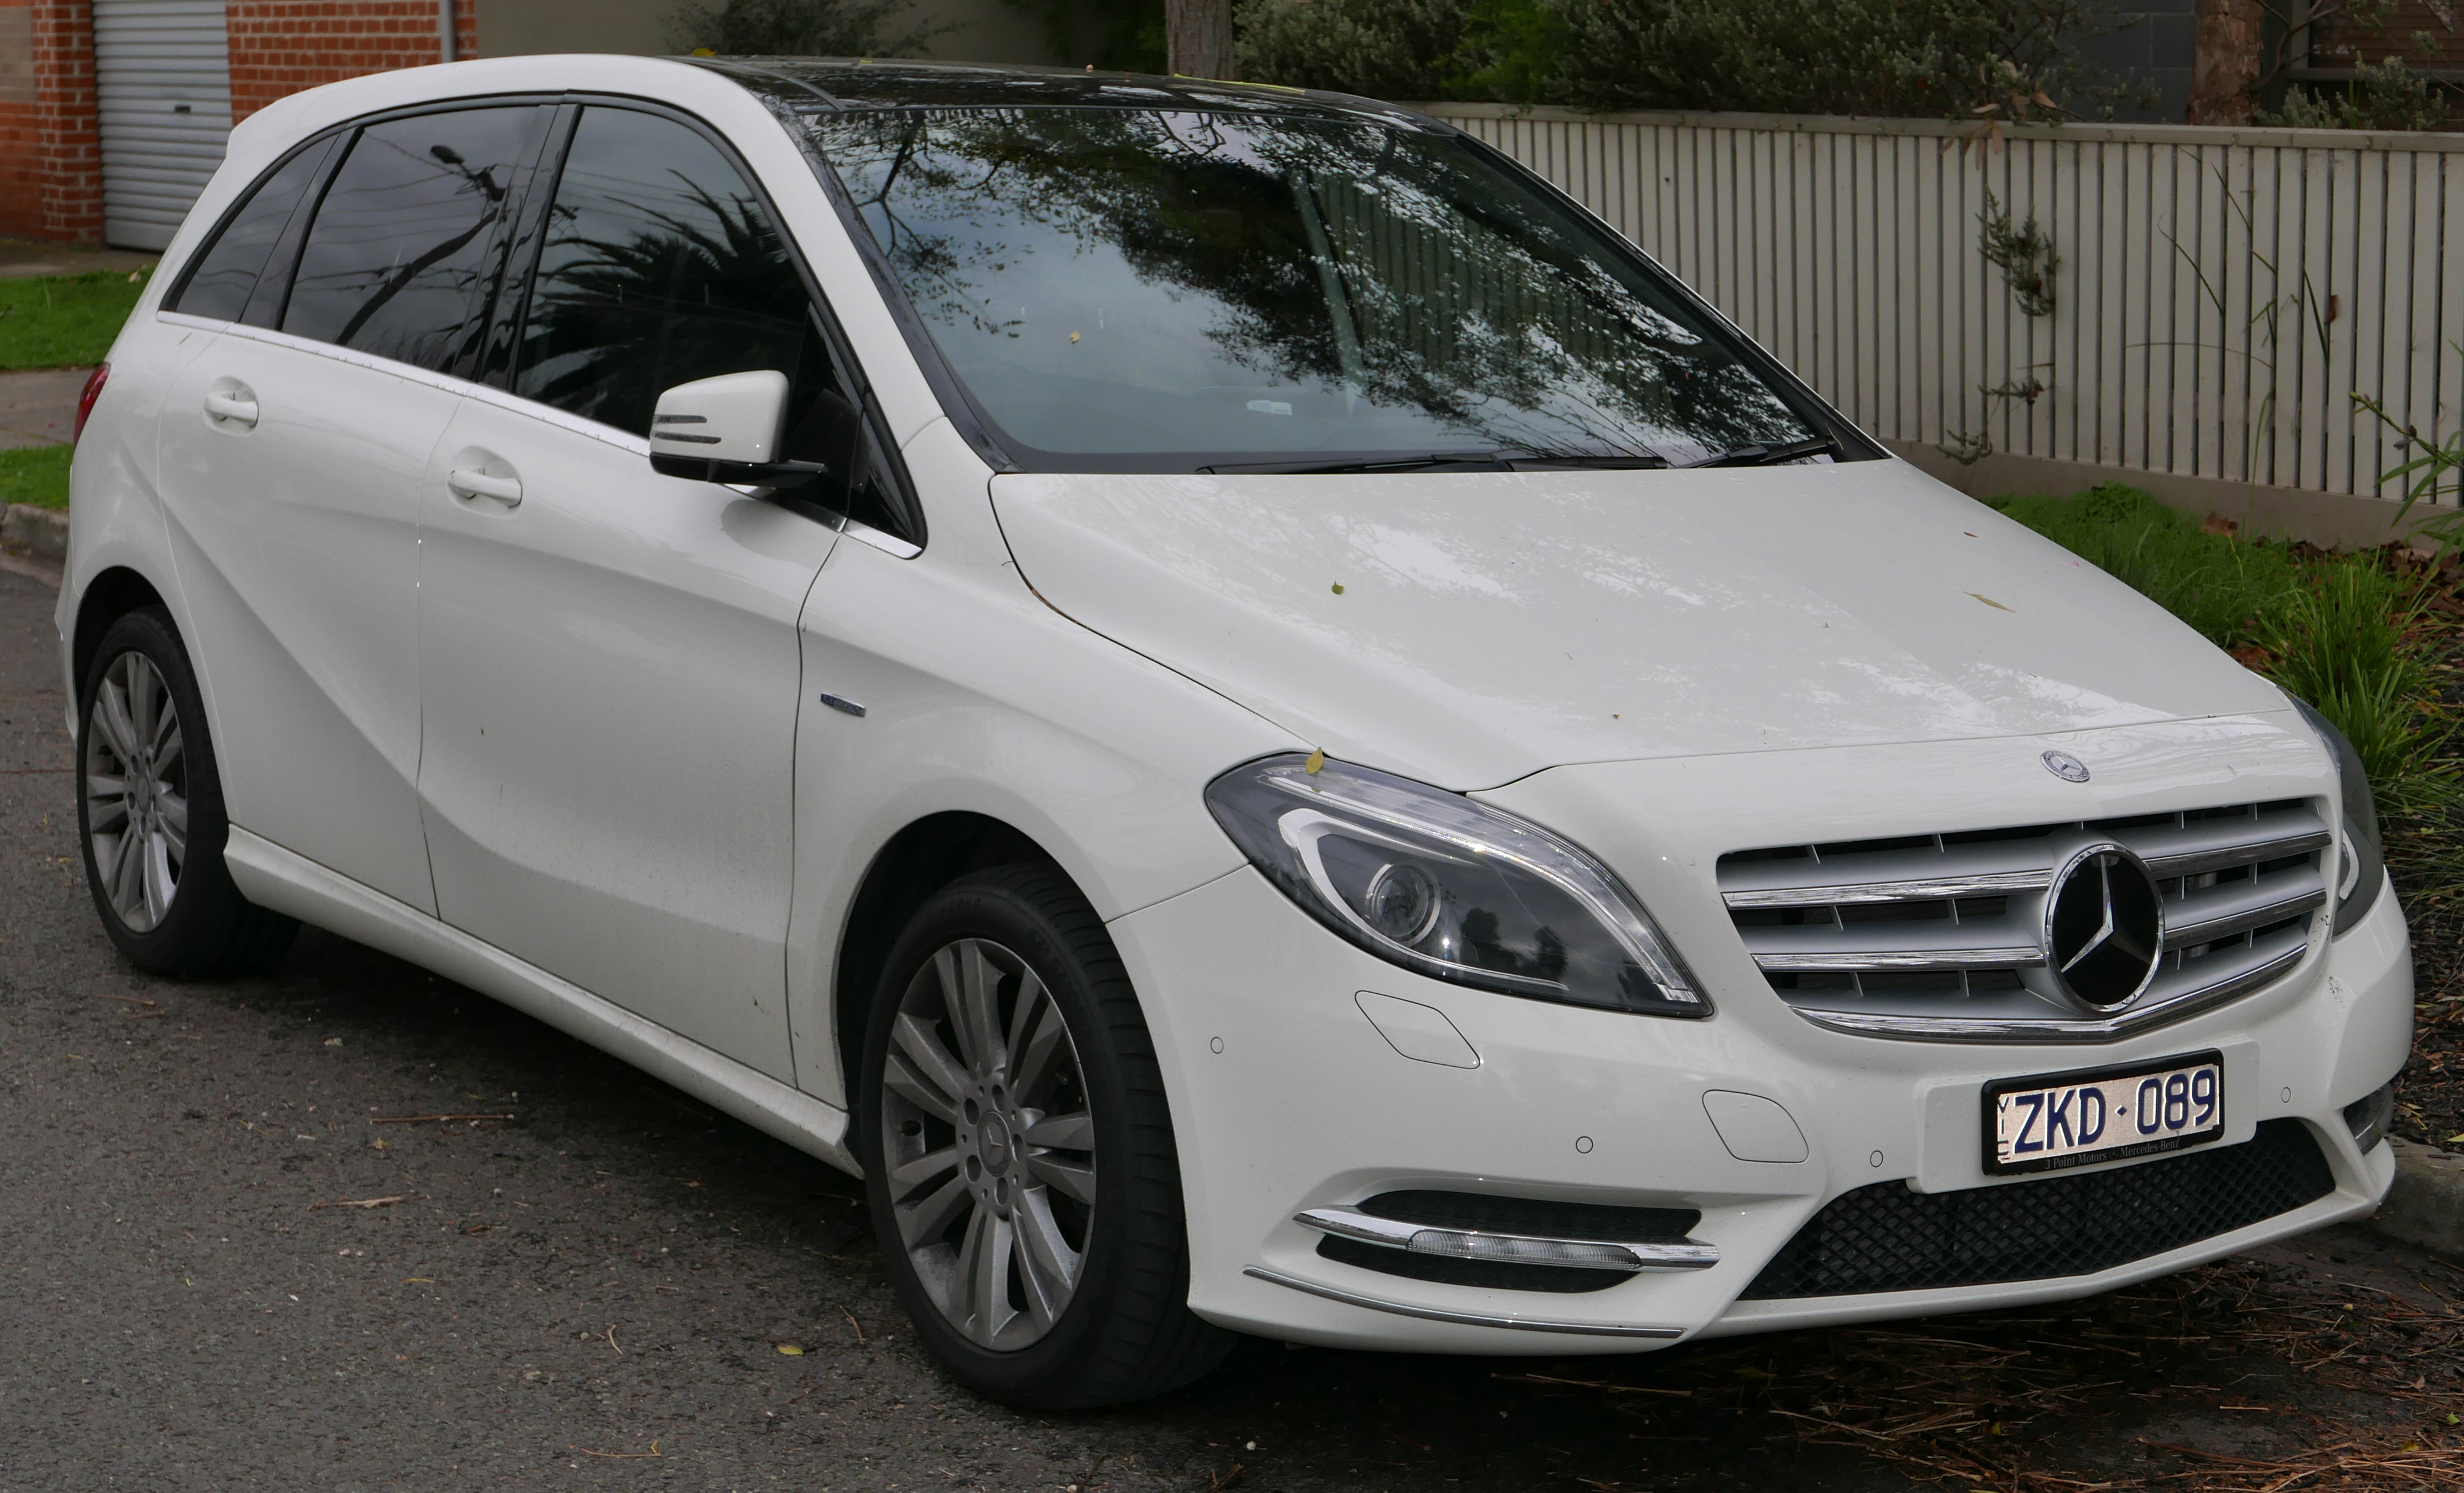 file 2012 mercedes benz b 200 cdi w 246 blueefficiency. Black Bedroom Furniture Sets. Home Design Ideas